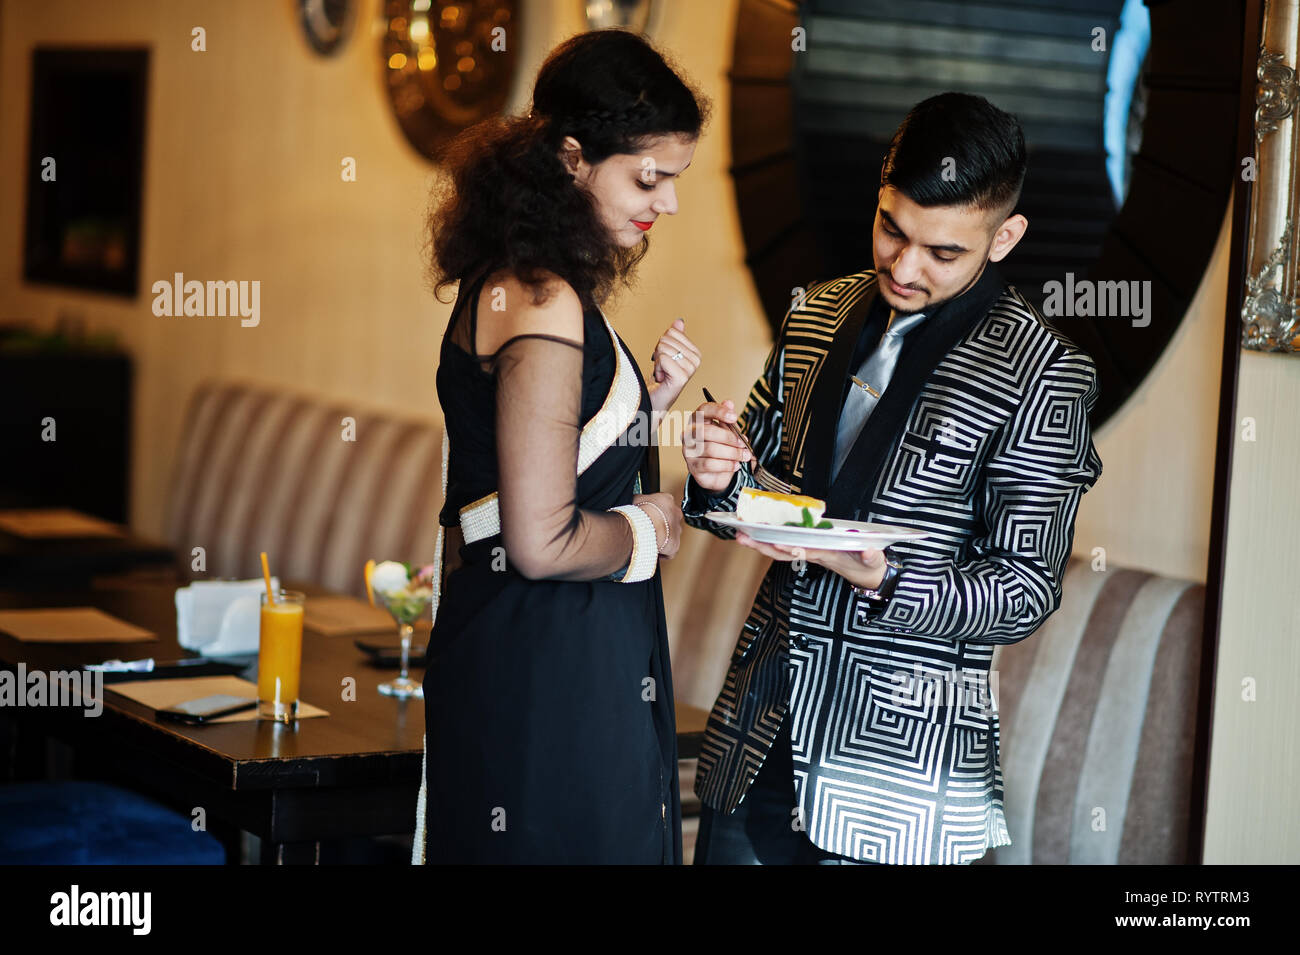 Lovely Indian Couple In Love Wear At Saree And Elegant Suit Posed On Restaurant Hold Plate With Cake Stock Photo Alamy